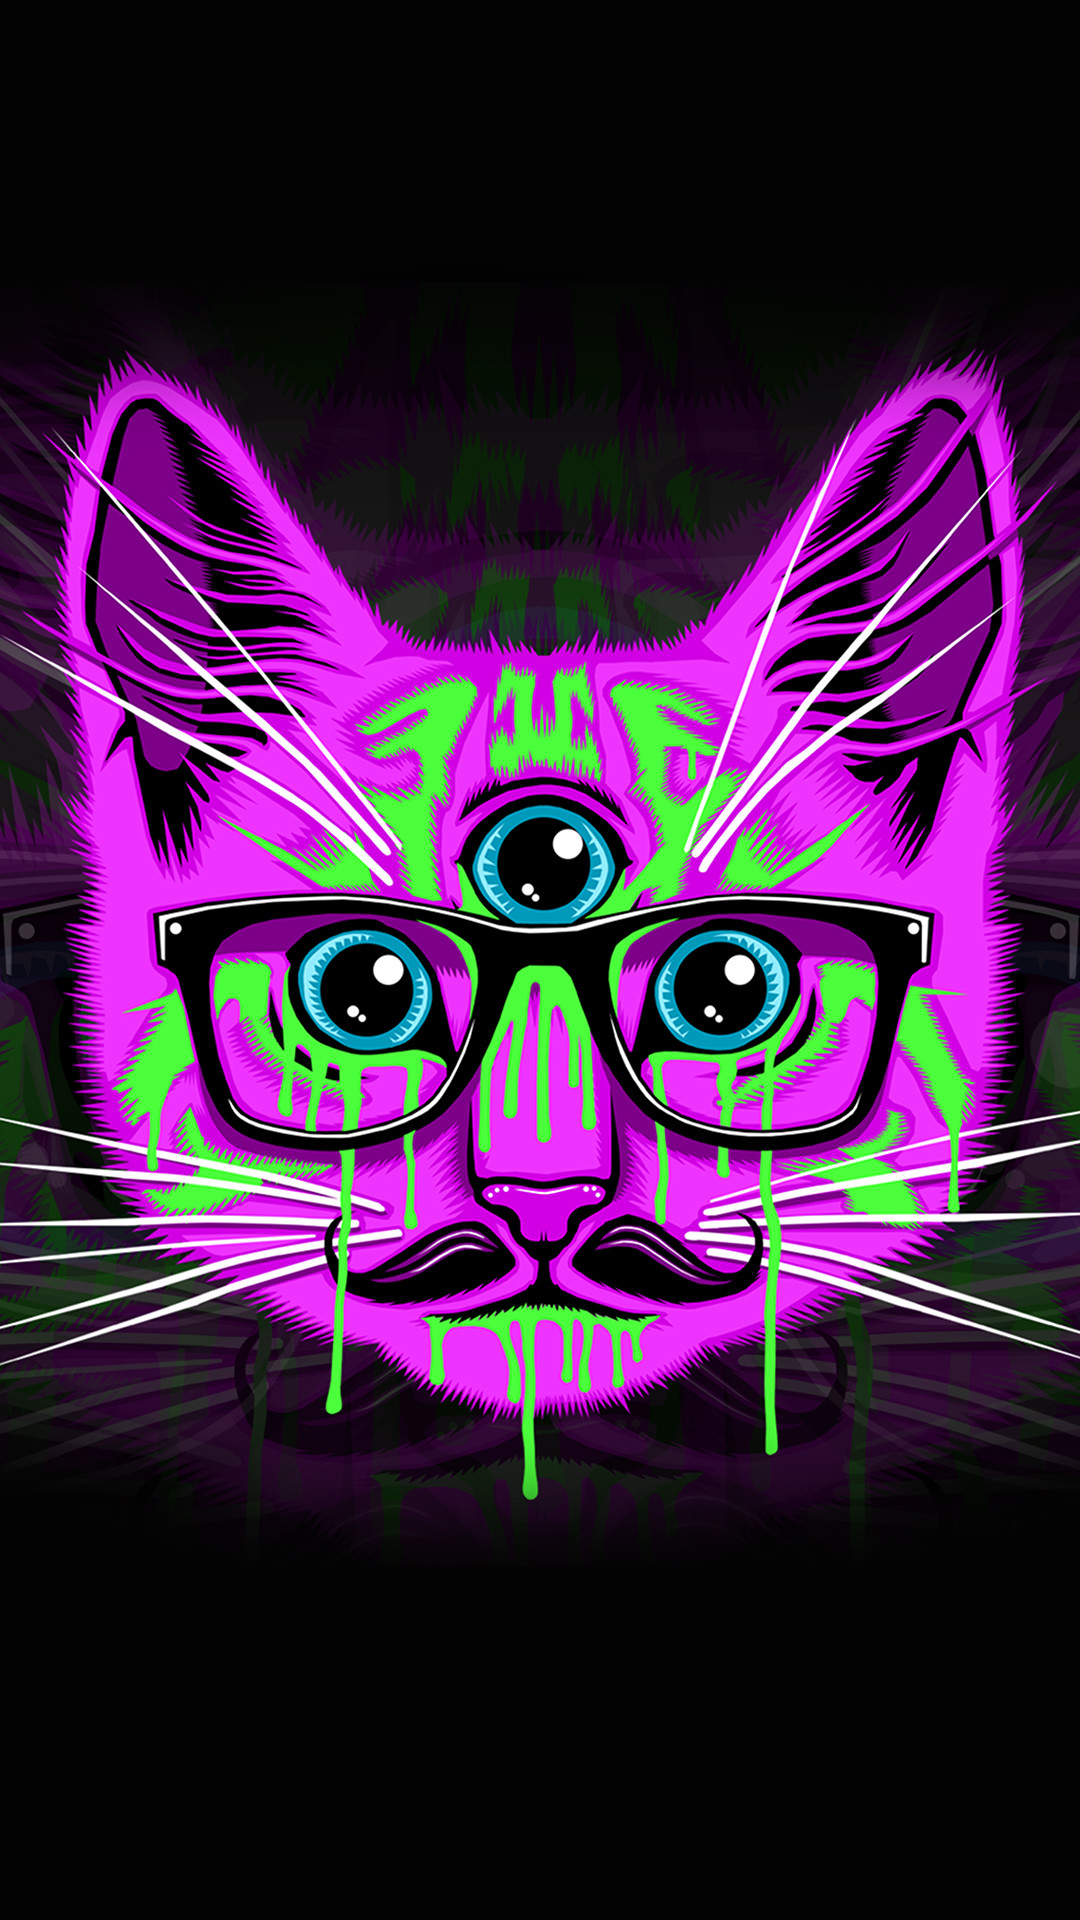 Res: 1080x1920, Download · Psychedelic Kitty Phone Wallpaper